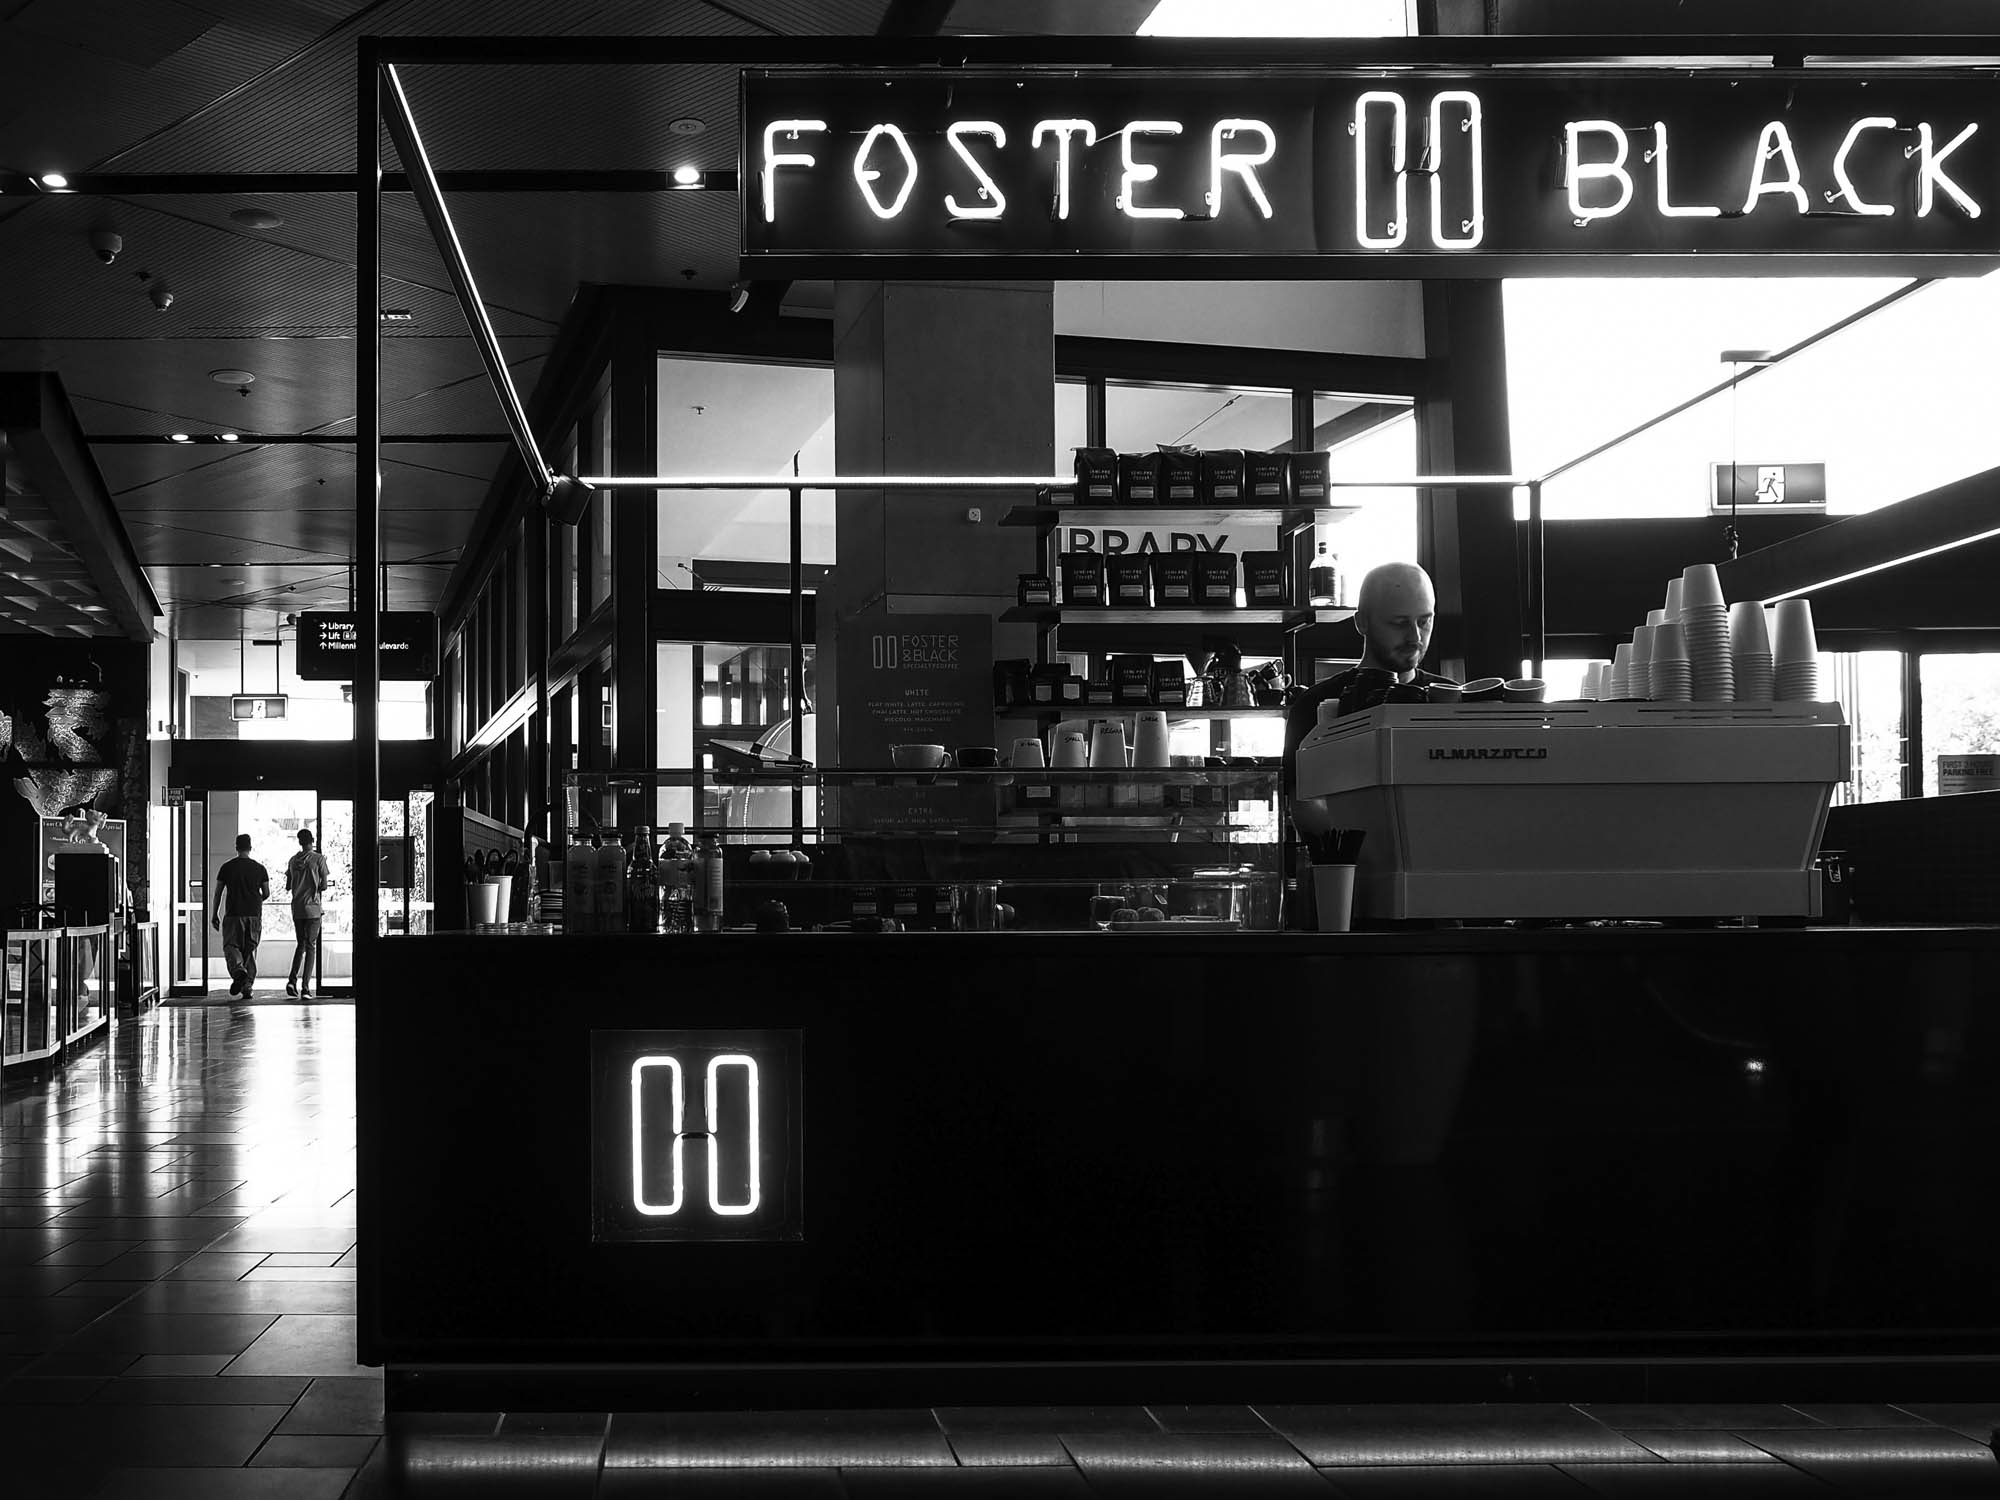 FOSTER AND BLACK-11